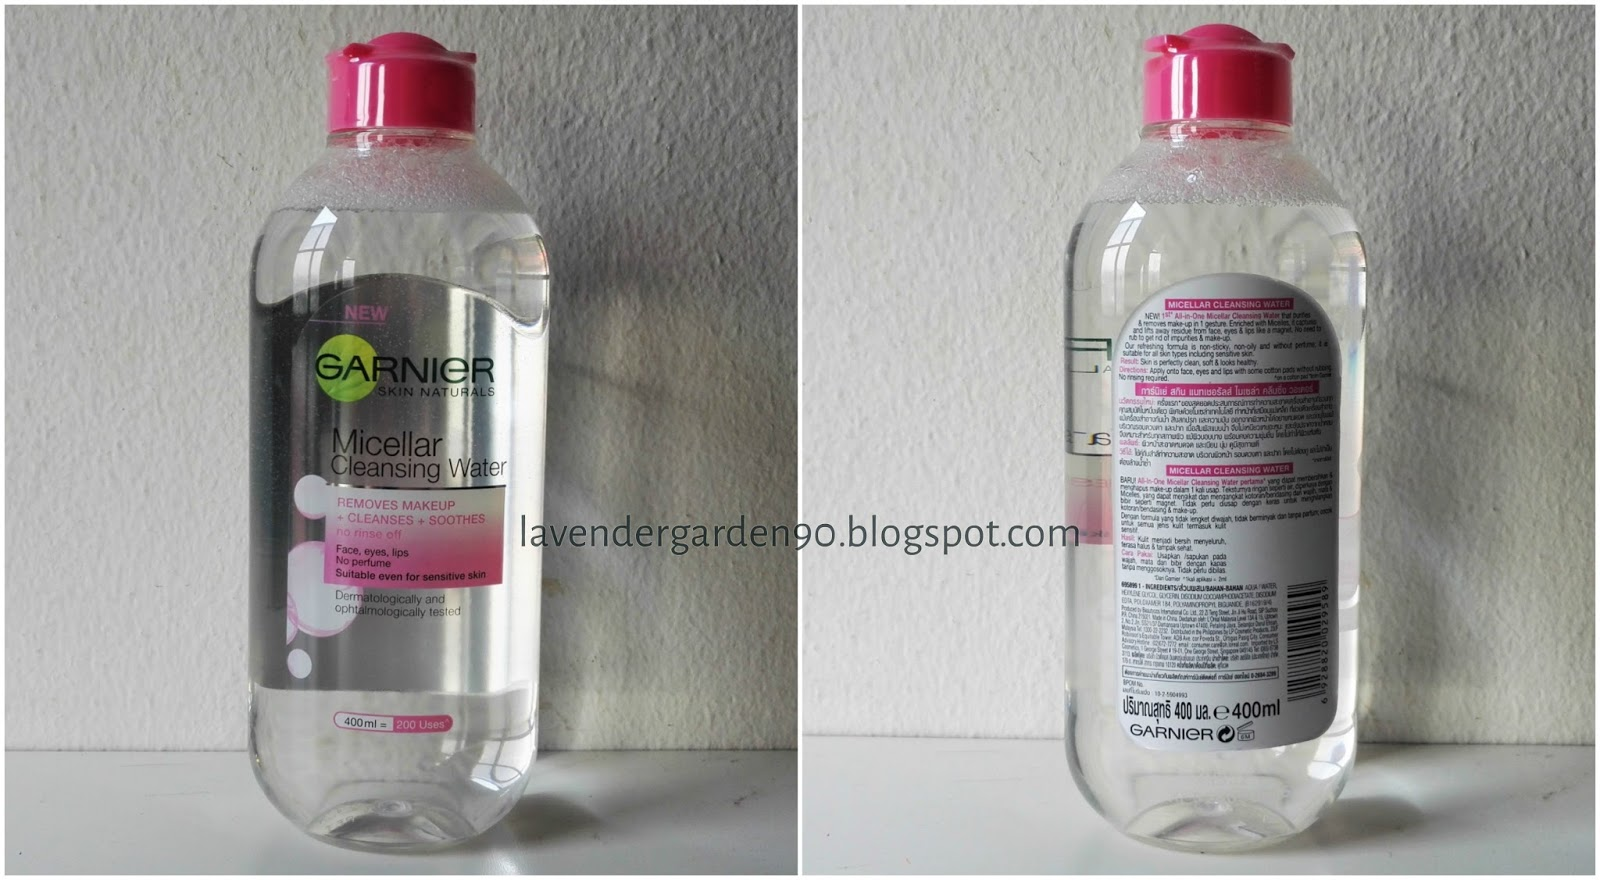 Carolyns Lavender Garden Review Garnier Micellar Cleansing Water L Oreal Makeup 250ml Blue However In Todays Case I Really See Miracle With This Gorgeous From Loreal Paris And Know Must Share It You